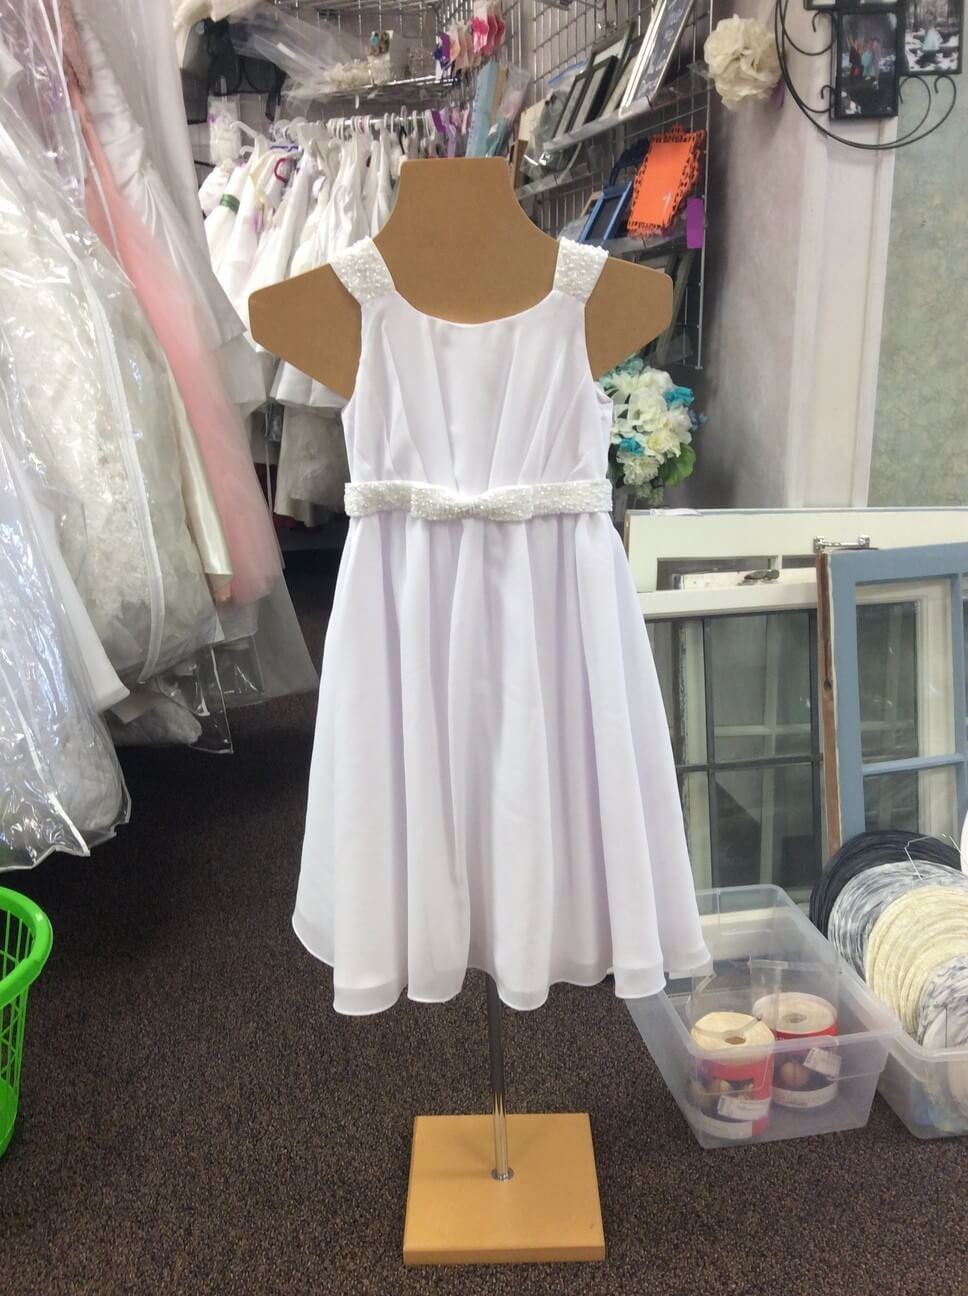 Consignment wedding dresses duluth mn mini bridal for Off the rack wedding dresses near me